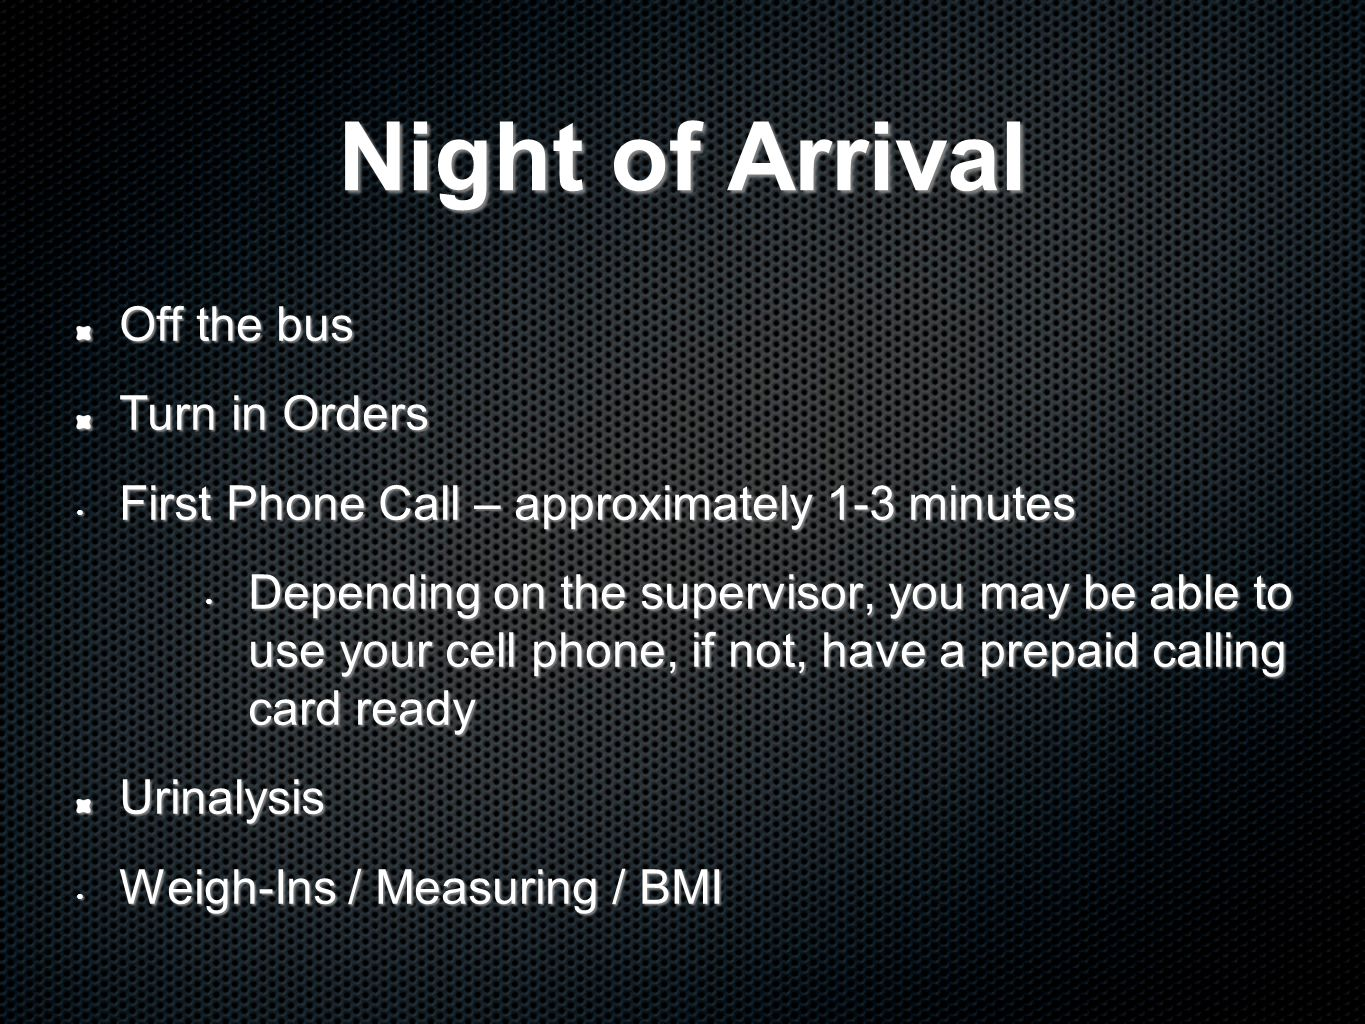 Night of Arrival Off the bus Turn in Orders First Phone Call – approximately 1-3 minutes First Phone Call – approximately 1-3 minutes Depending on the supervisor, you may be able to use your cell phone, if not, have a prepaid calling card ready Depending on the supervisor, you may be able to use your cell phone, if not, have a prepaid calling card readyUrinalysis Weigh-Ins / Measuring / BMI Weigh-Ins / Measuring / BMI